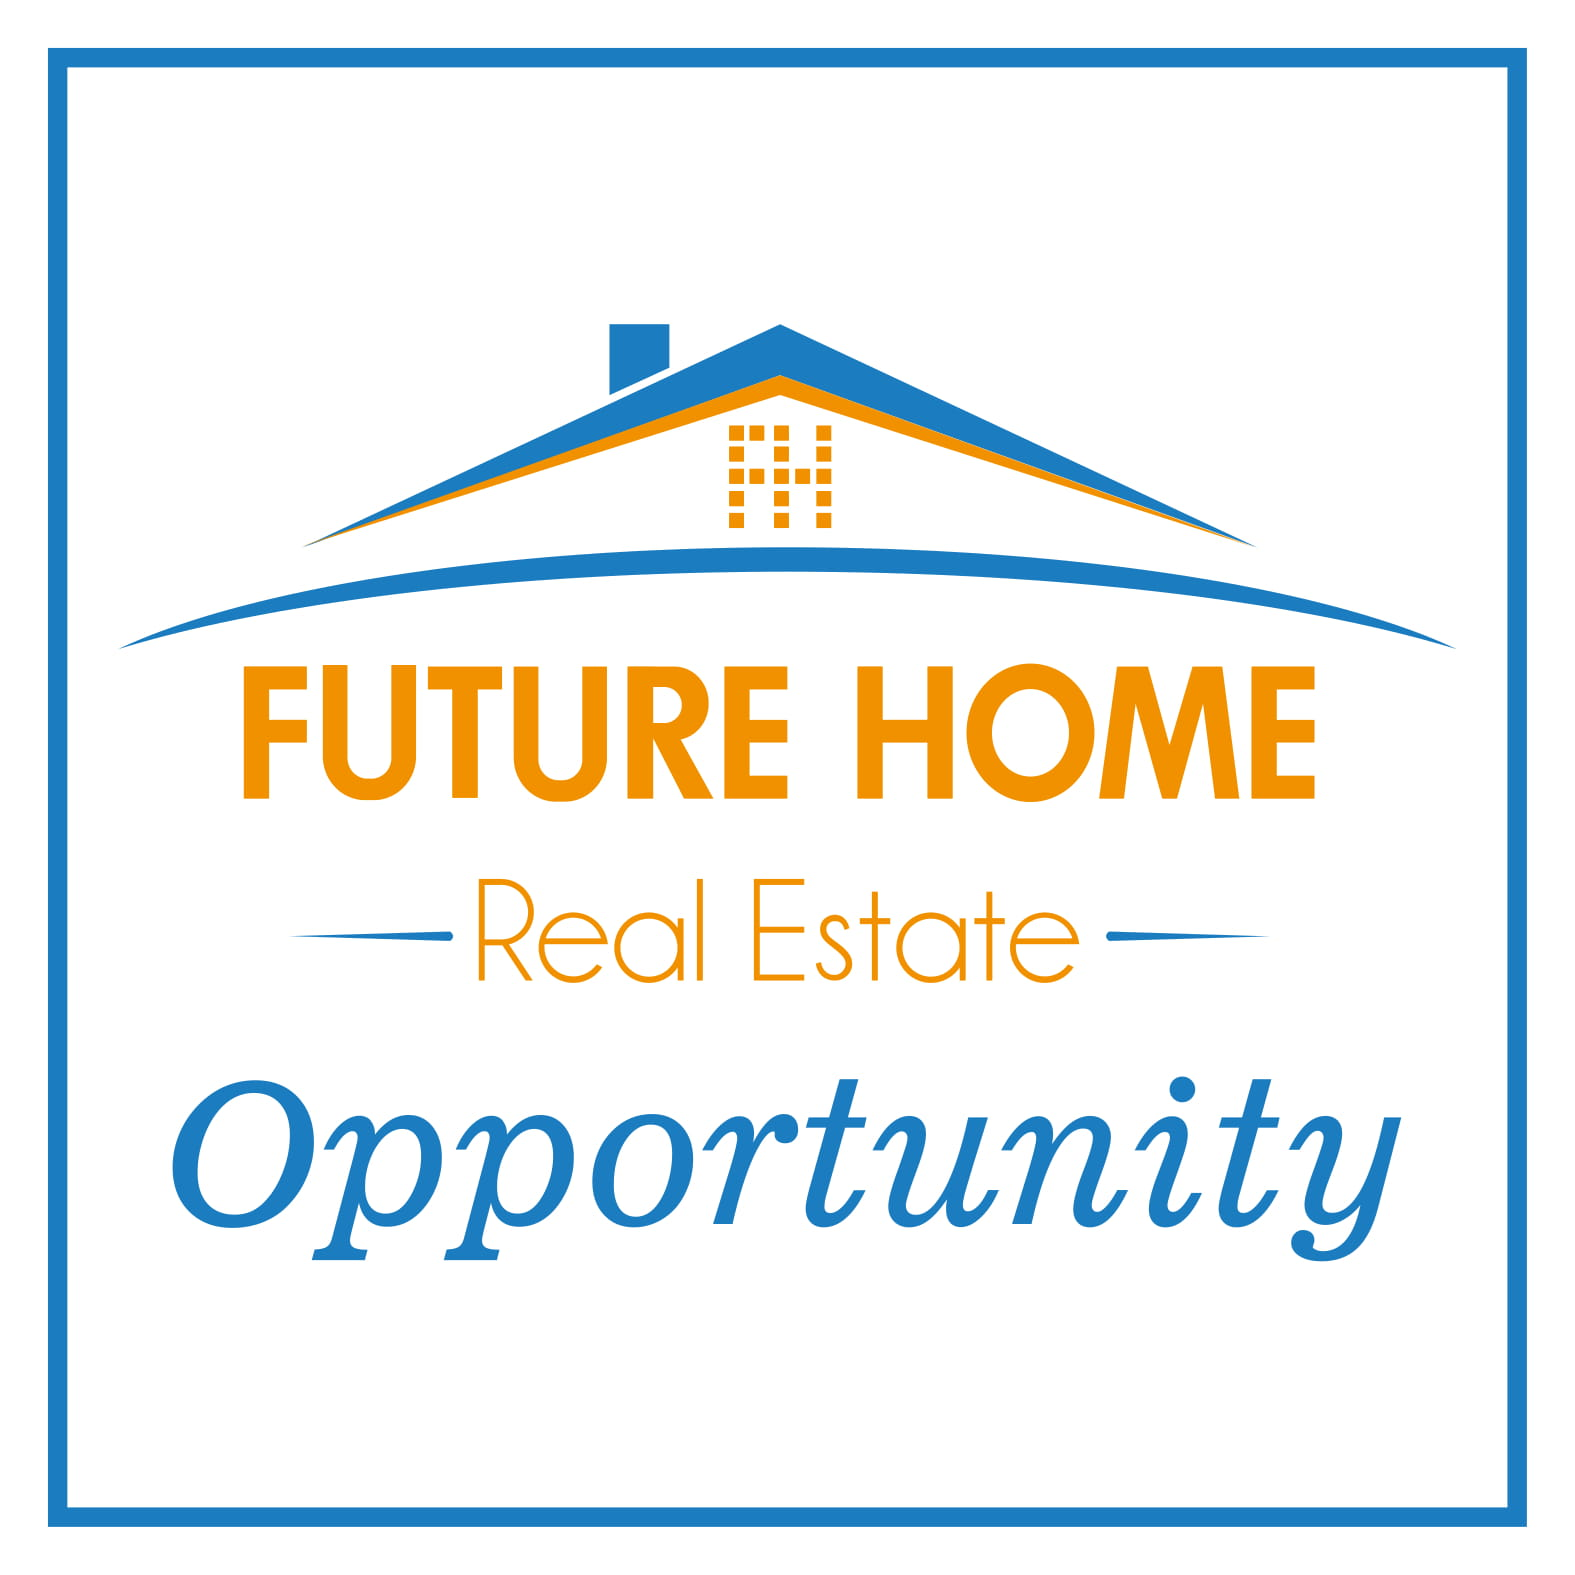 Future Home Opportunity